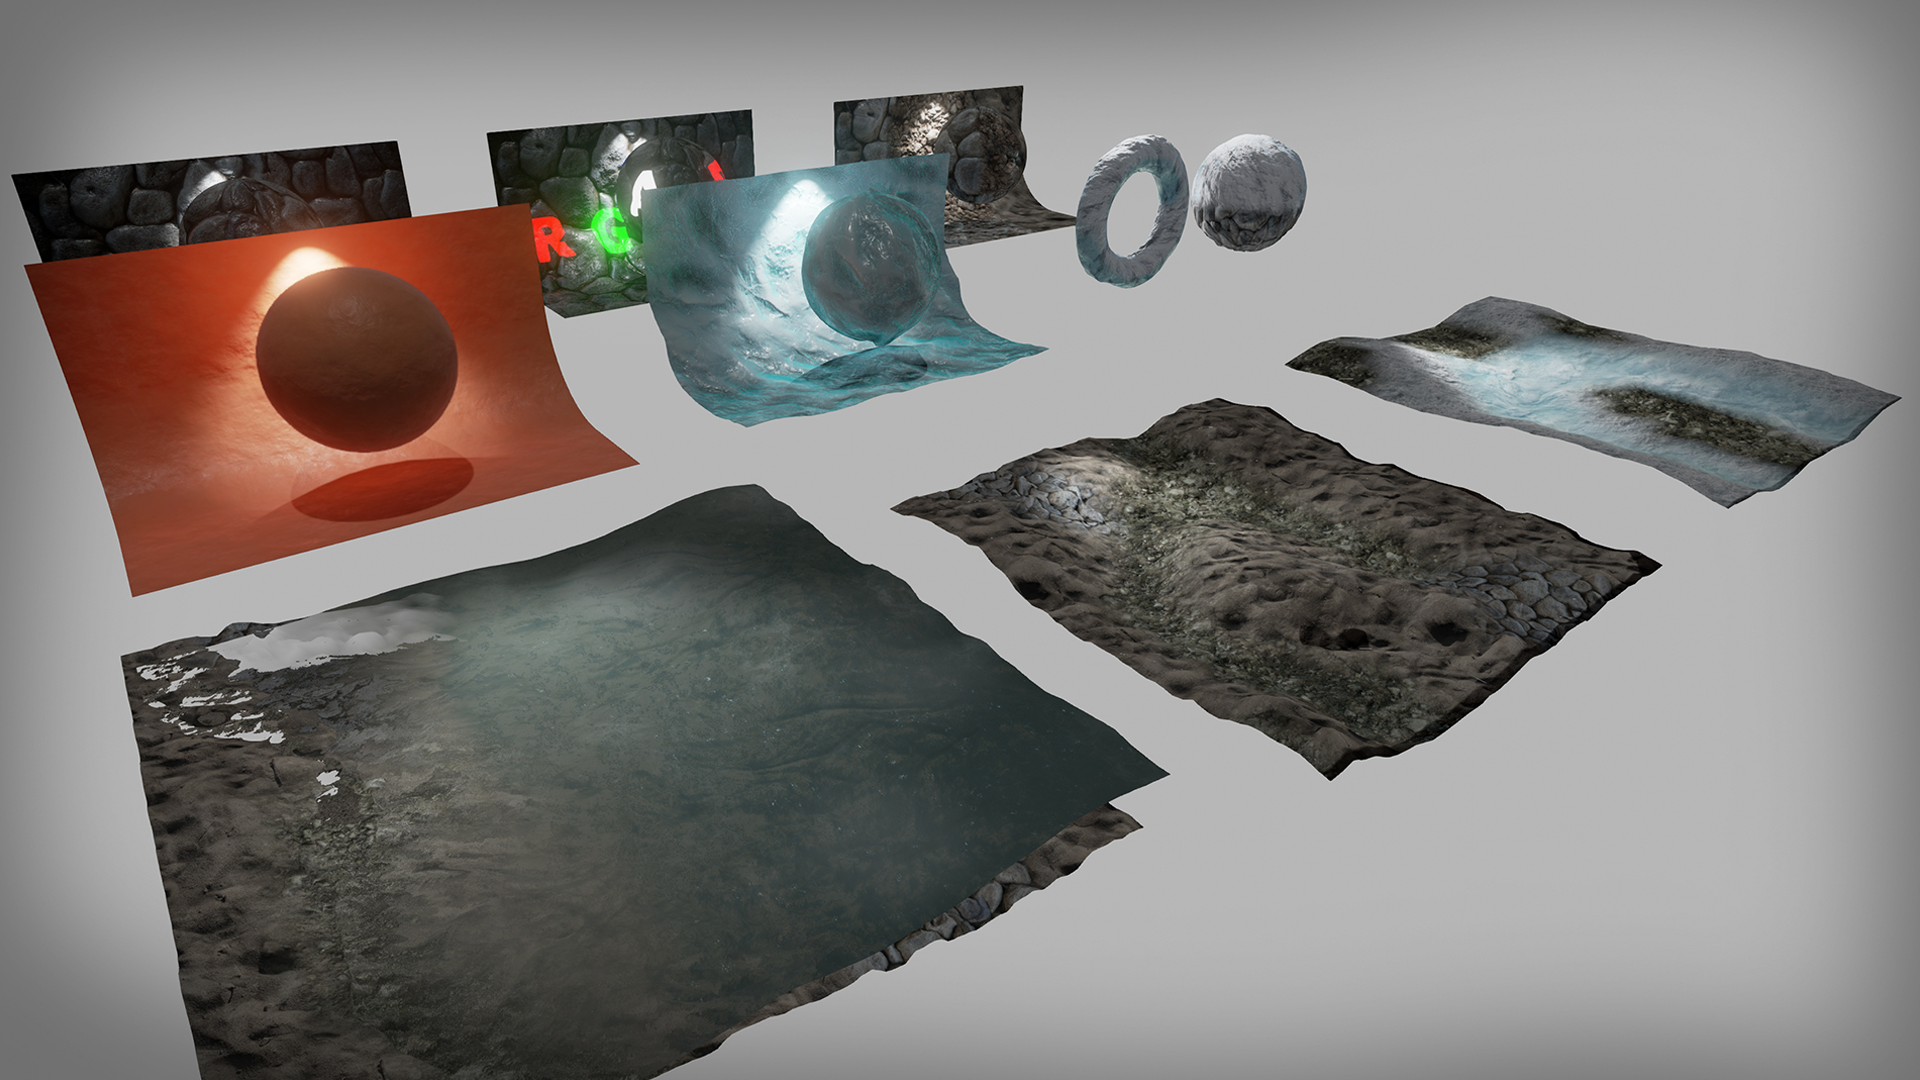 Advanced materials ed 2 by c media in materials ue4 for Waste material items